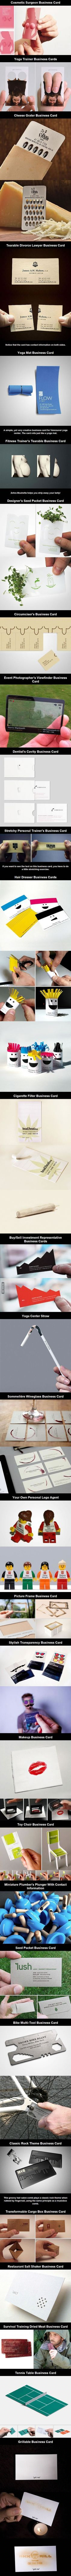 Some of these are really cool. 30 Of The Most Creative Business Cards Ever. http://9gag.com?utm_content=buffer4183c&utm_medium=social&utm_source=pinterest.com&utm_campaign=buffer  http://arcreactions.com/services/online-marketing/?utm_content=buffer34bb6&utm_medium=social&utm_source=pinterest.com&utm_campaign=buffer